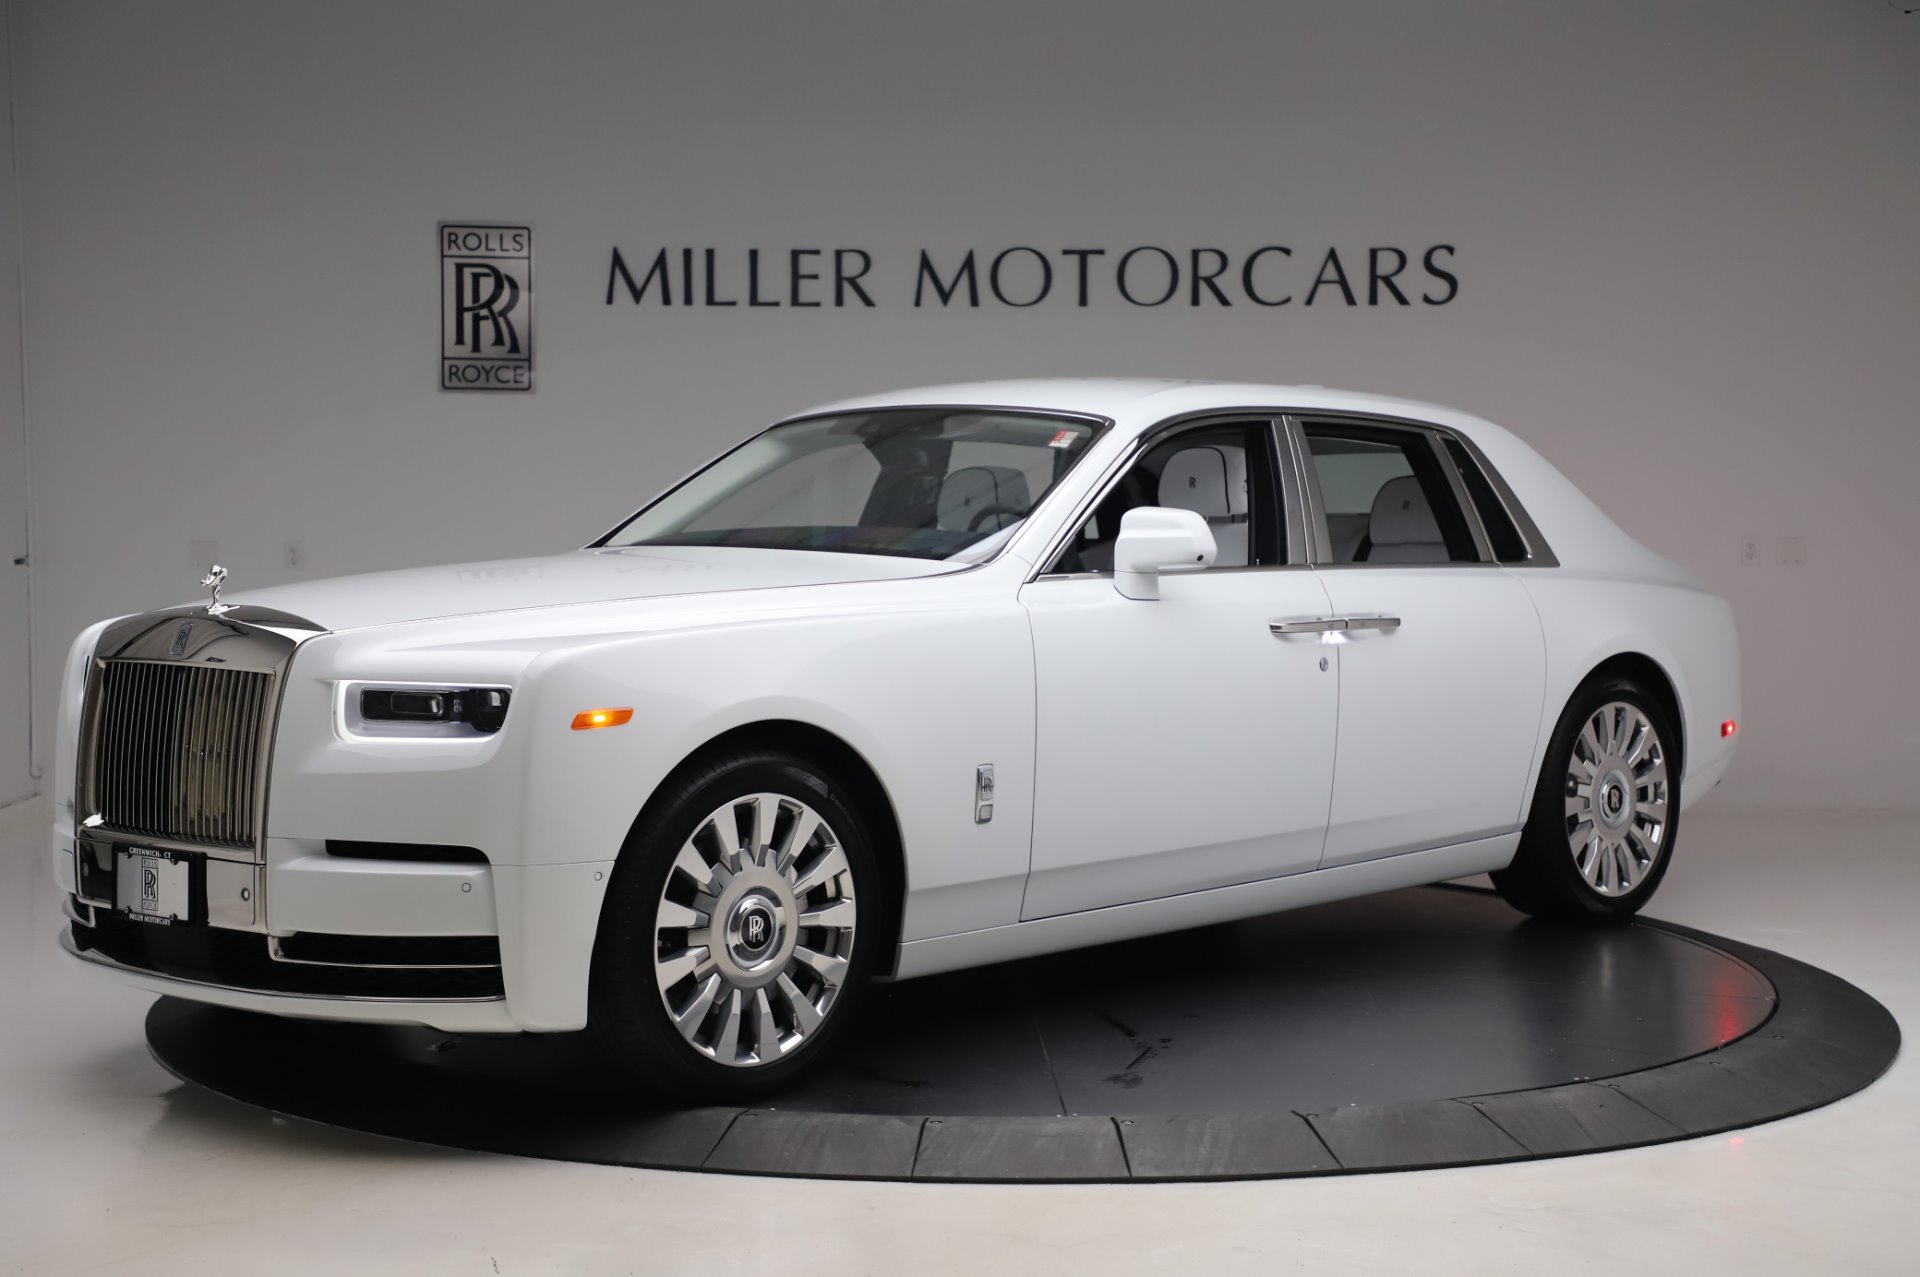 New 2020 Rolls-Royce Phantom for sale $545,200 at Bentley Greenwich in Greenwich CT 06830 1